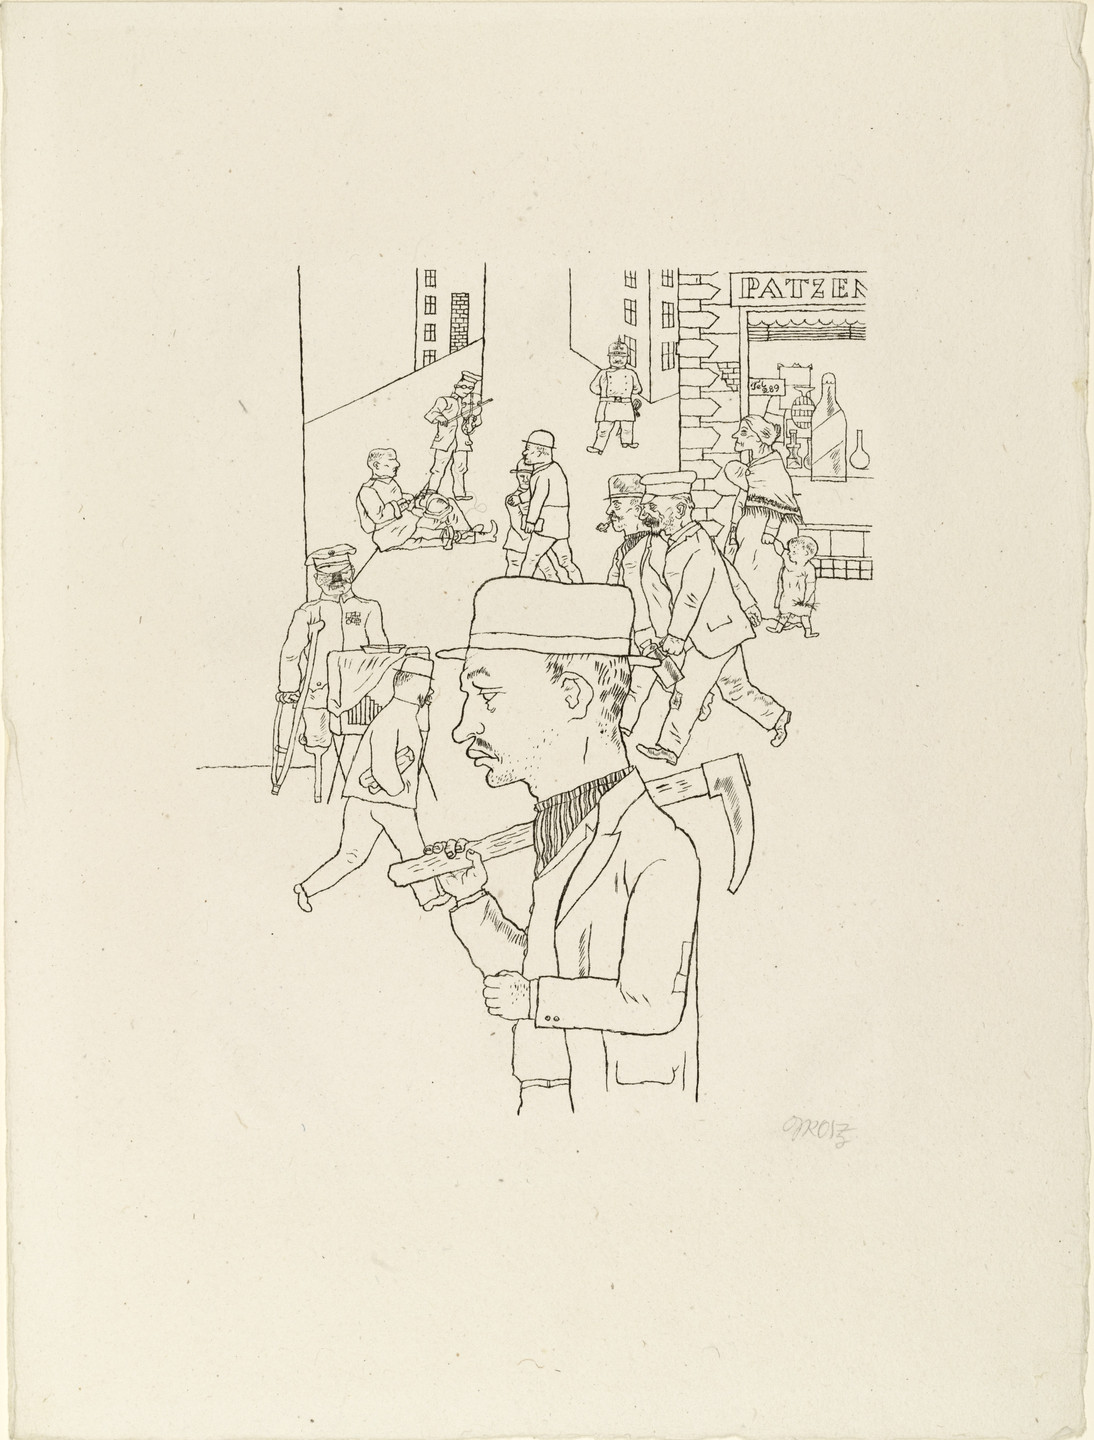 George Grosz. Pay Day from In the Shadows (Im Schatten). c. 1920, published 1921